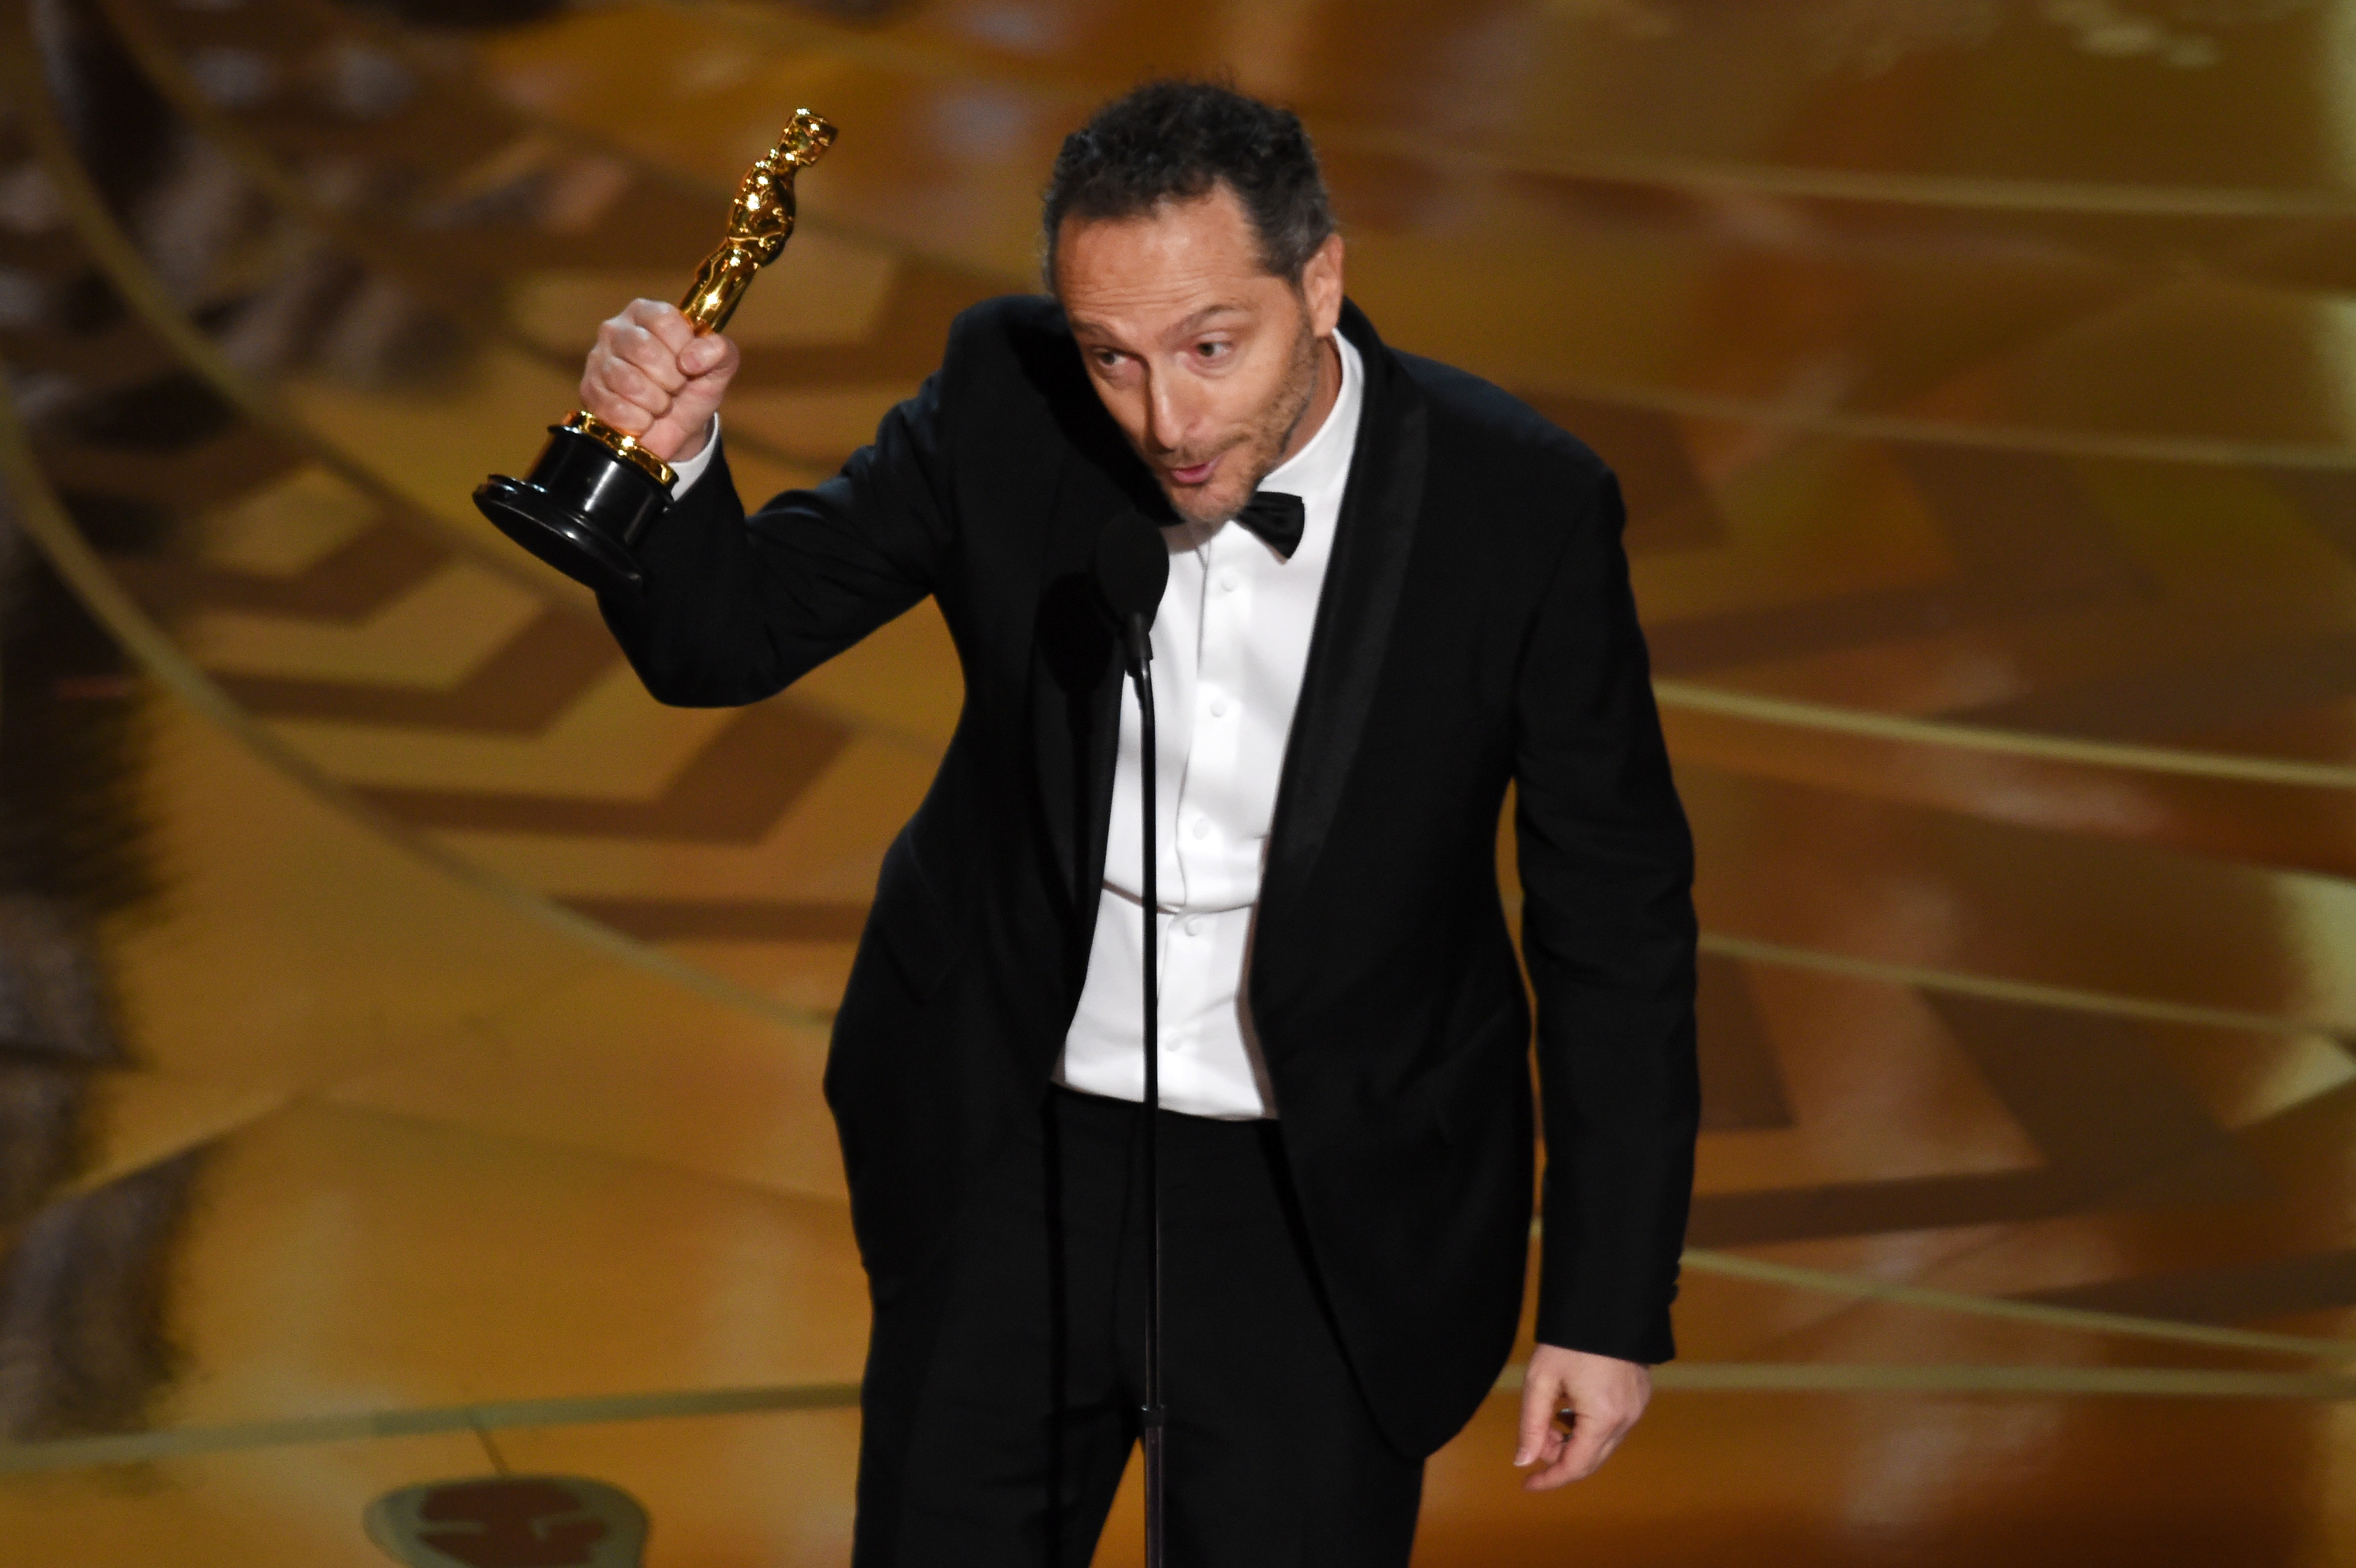 Oscar-Winning Cinematographer Emmanuel Lubezki's KIND Commercial About Immigrants Crossing the Desert Might Make You Cry